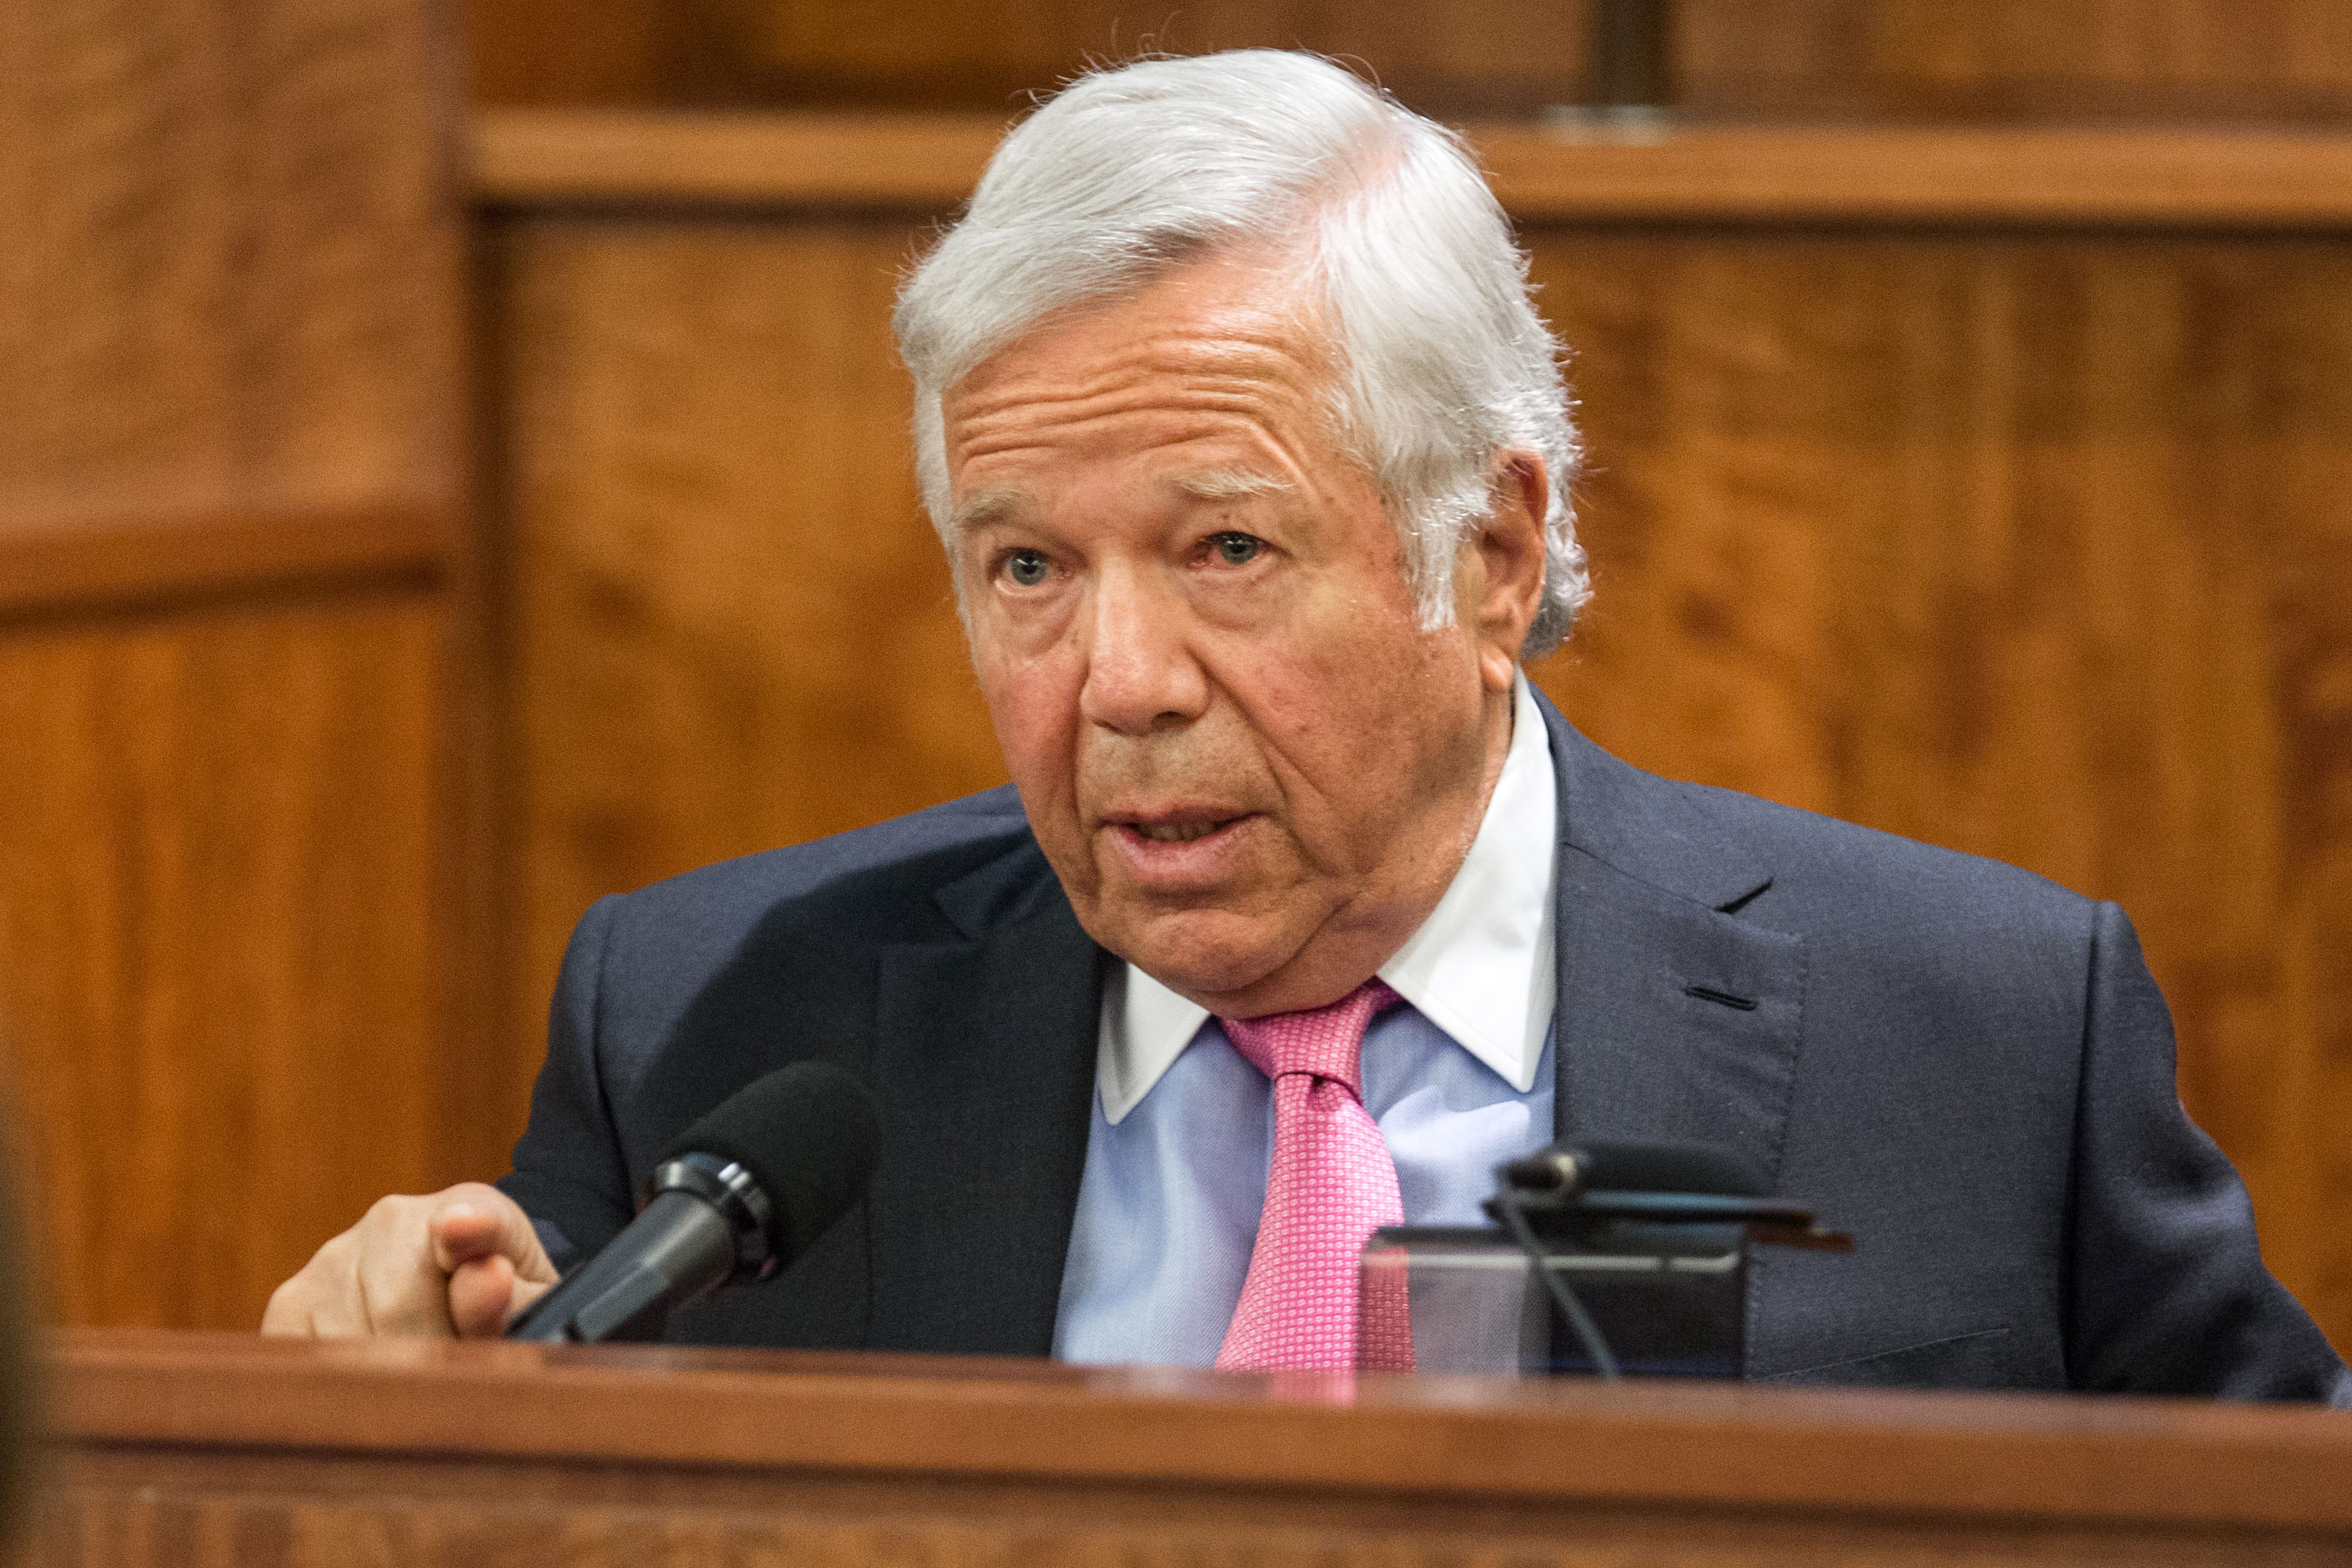 New England Patriots owner Robert Kraft testifies during the murder trial of former Patriots football player Aaron Hernandez, Tuesday, March 31, 2015, at Bristol County Superior Court in Fall River, Mass. Hernandez is accused of killing Odin Lloyd...